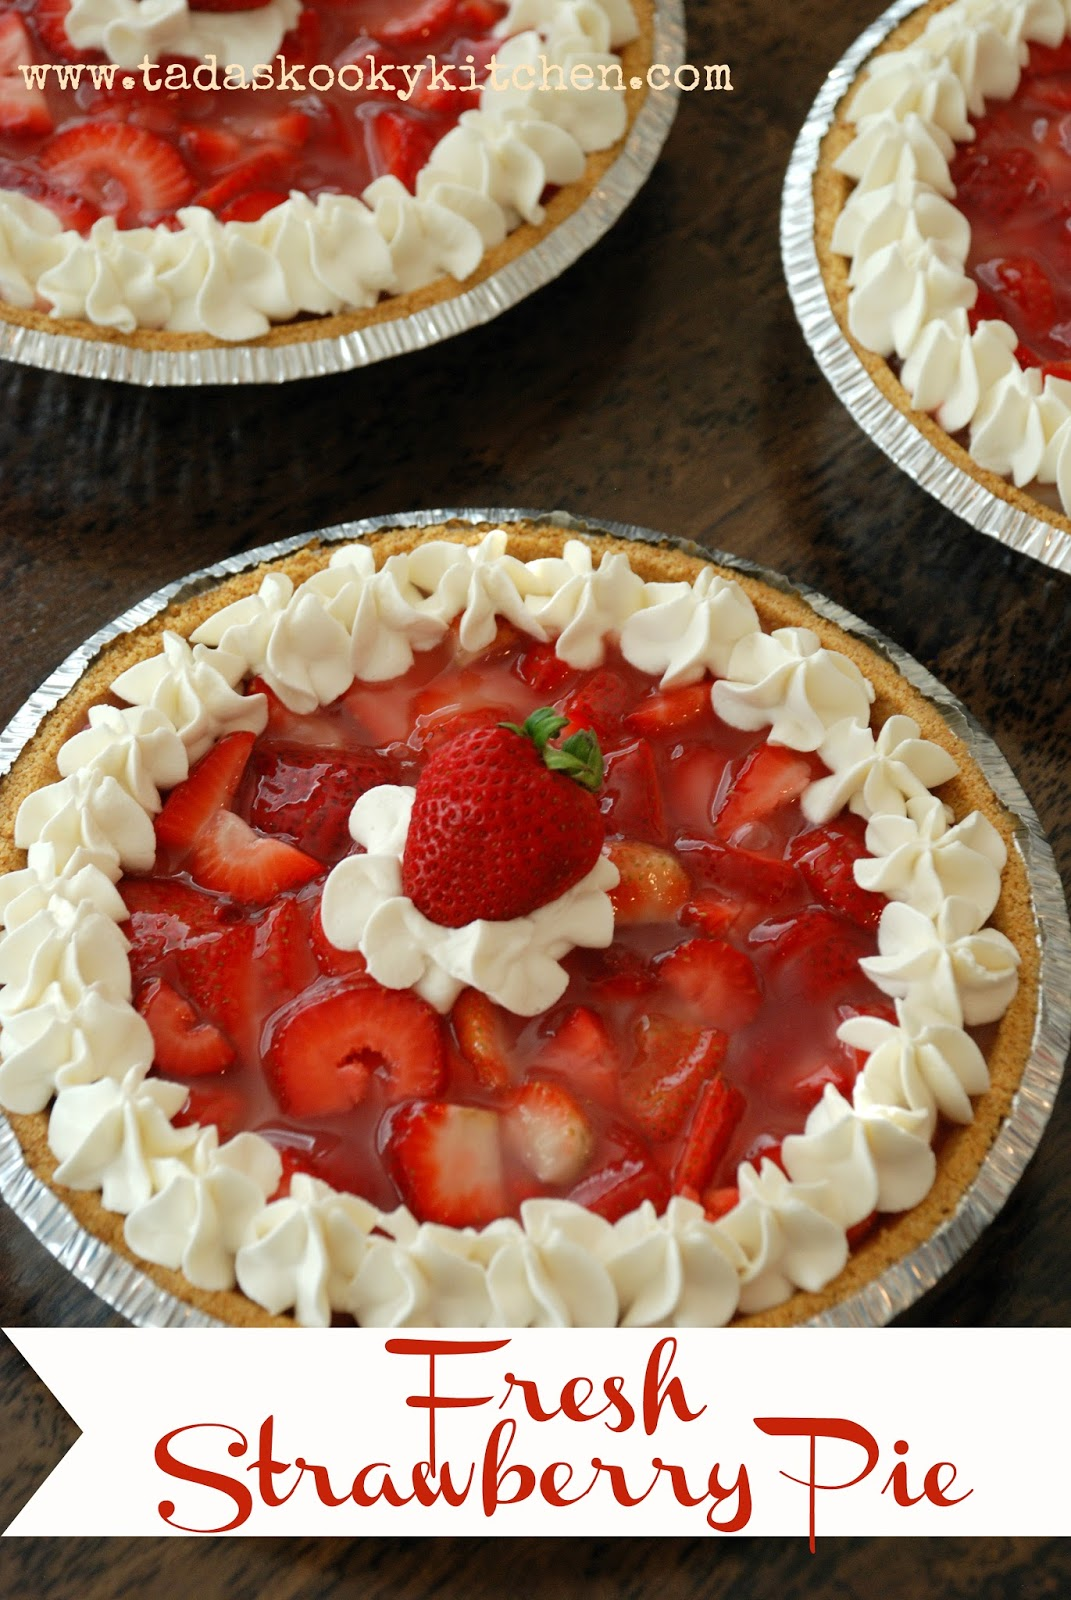 fresh strawberry pie 3 graham cracker crusts 1st layer 8